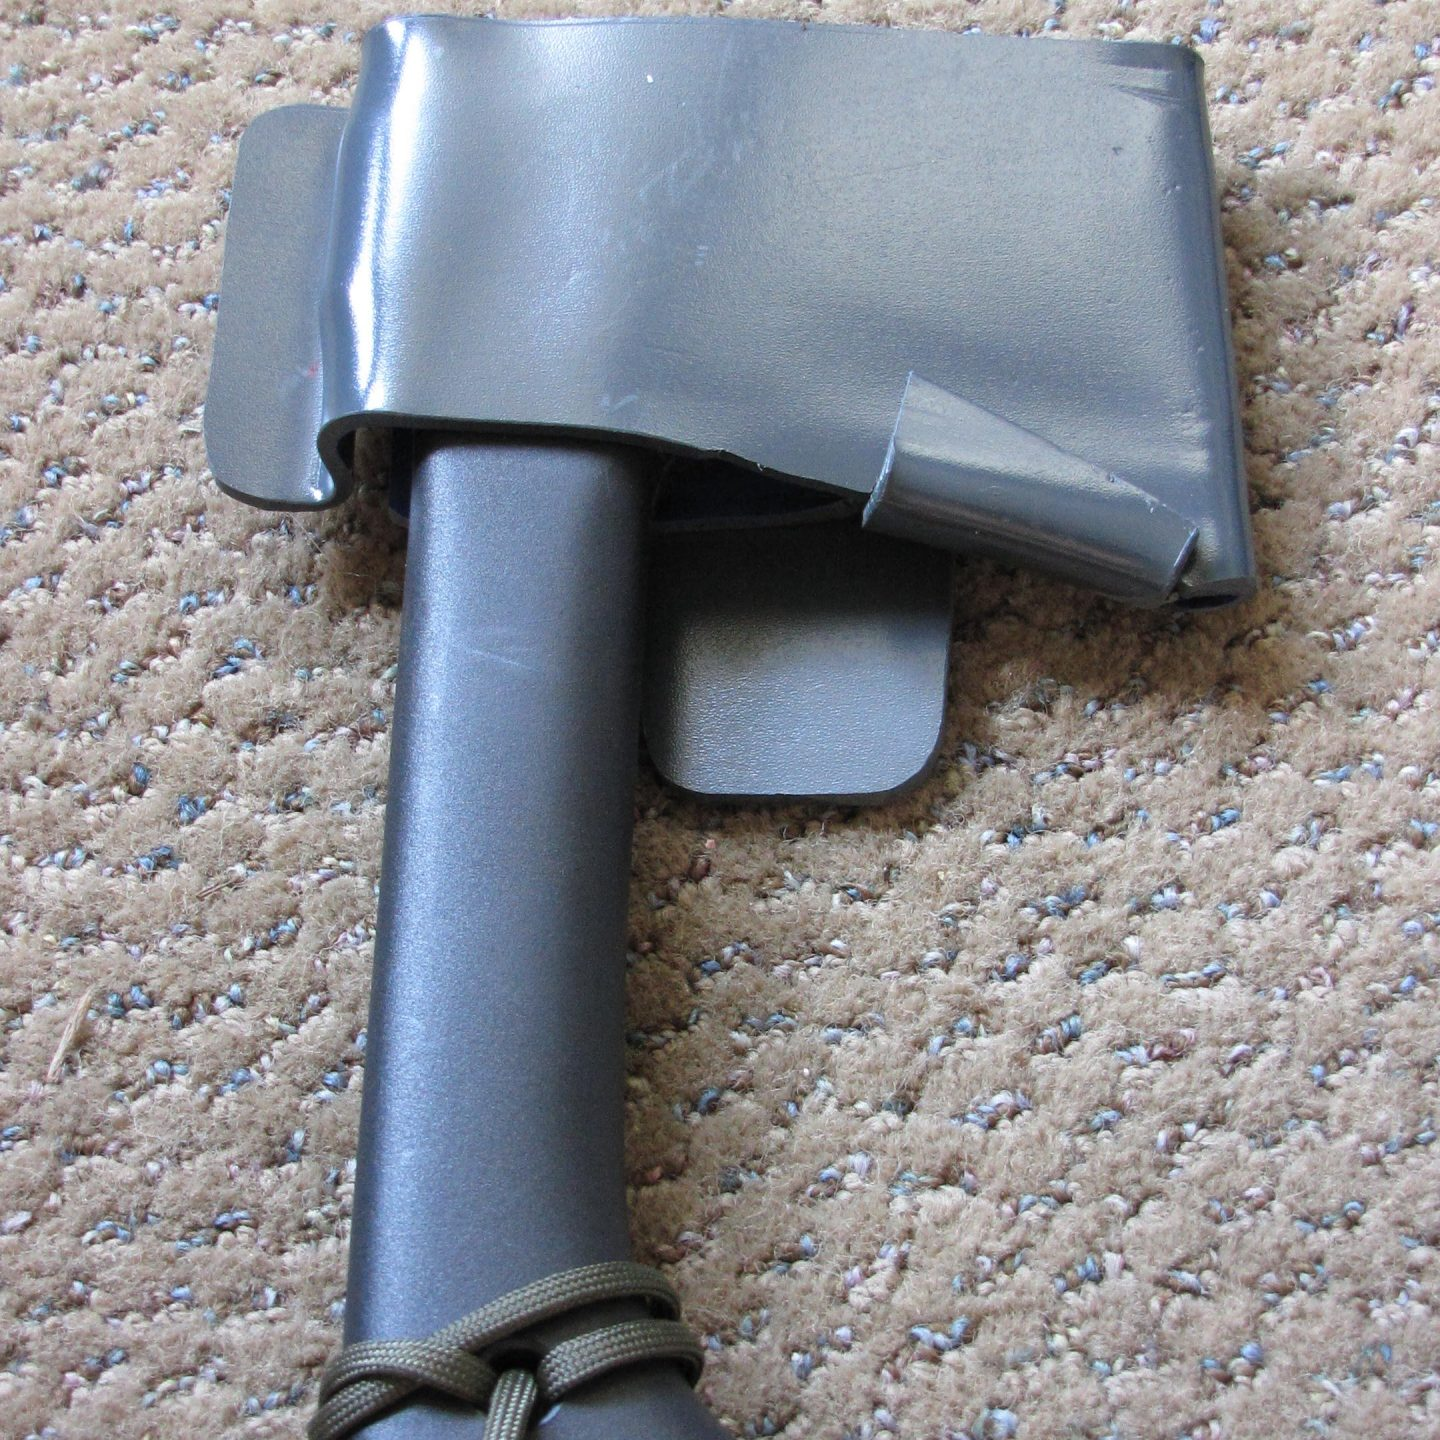 [09.15.11] Belt Hatchet Holder: Thermal Plastics